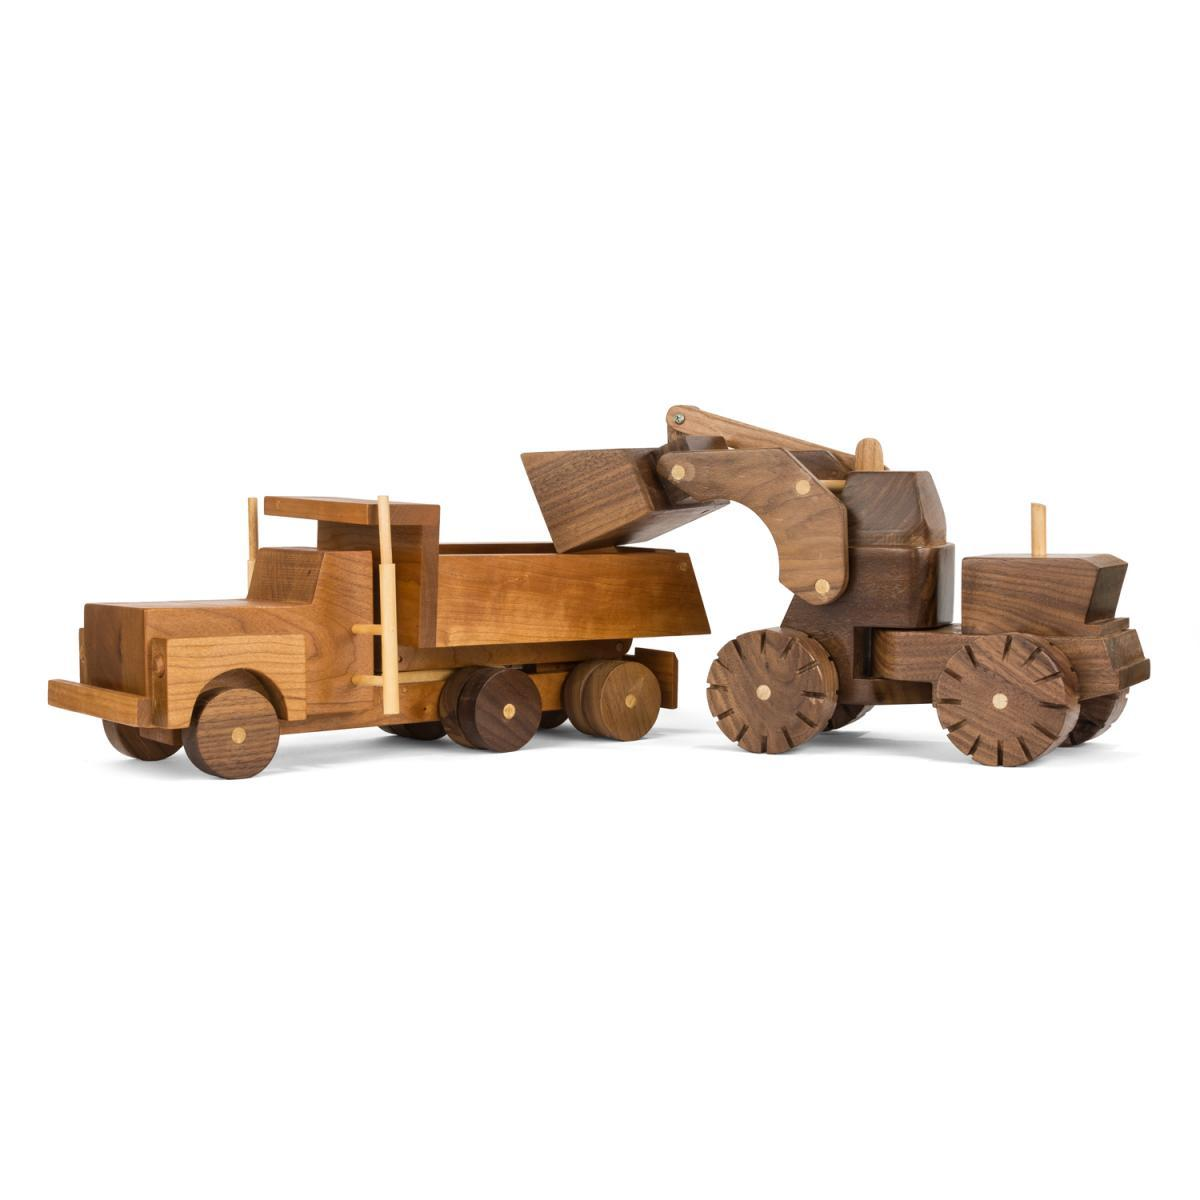 wooden gifts | yestermorrow design/build school